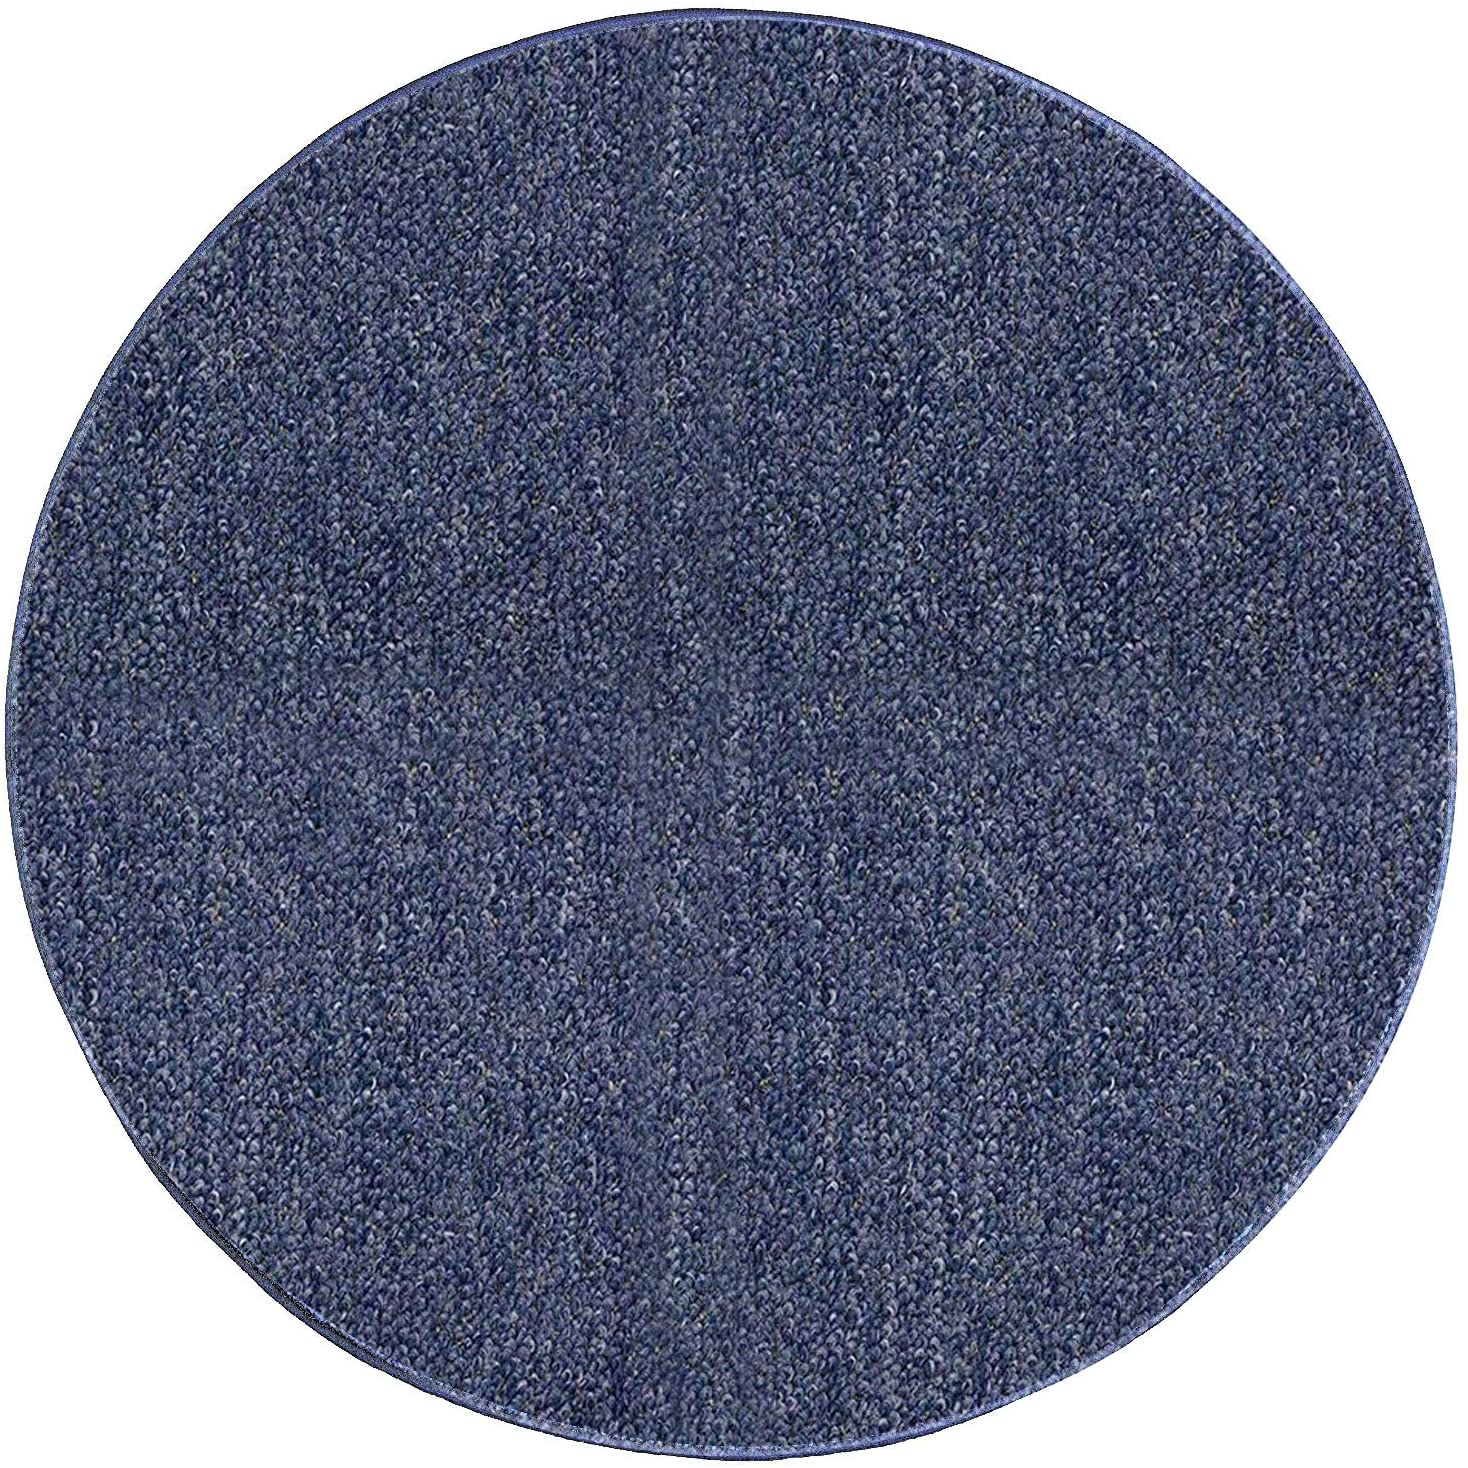 Ambiant Indoor Outdoor Area Rugs, Violet - 5' Round